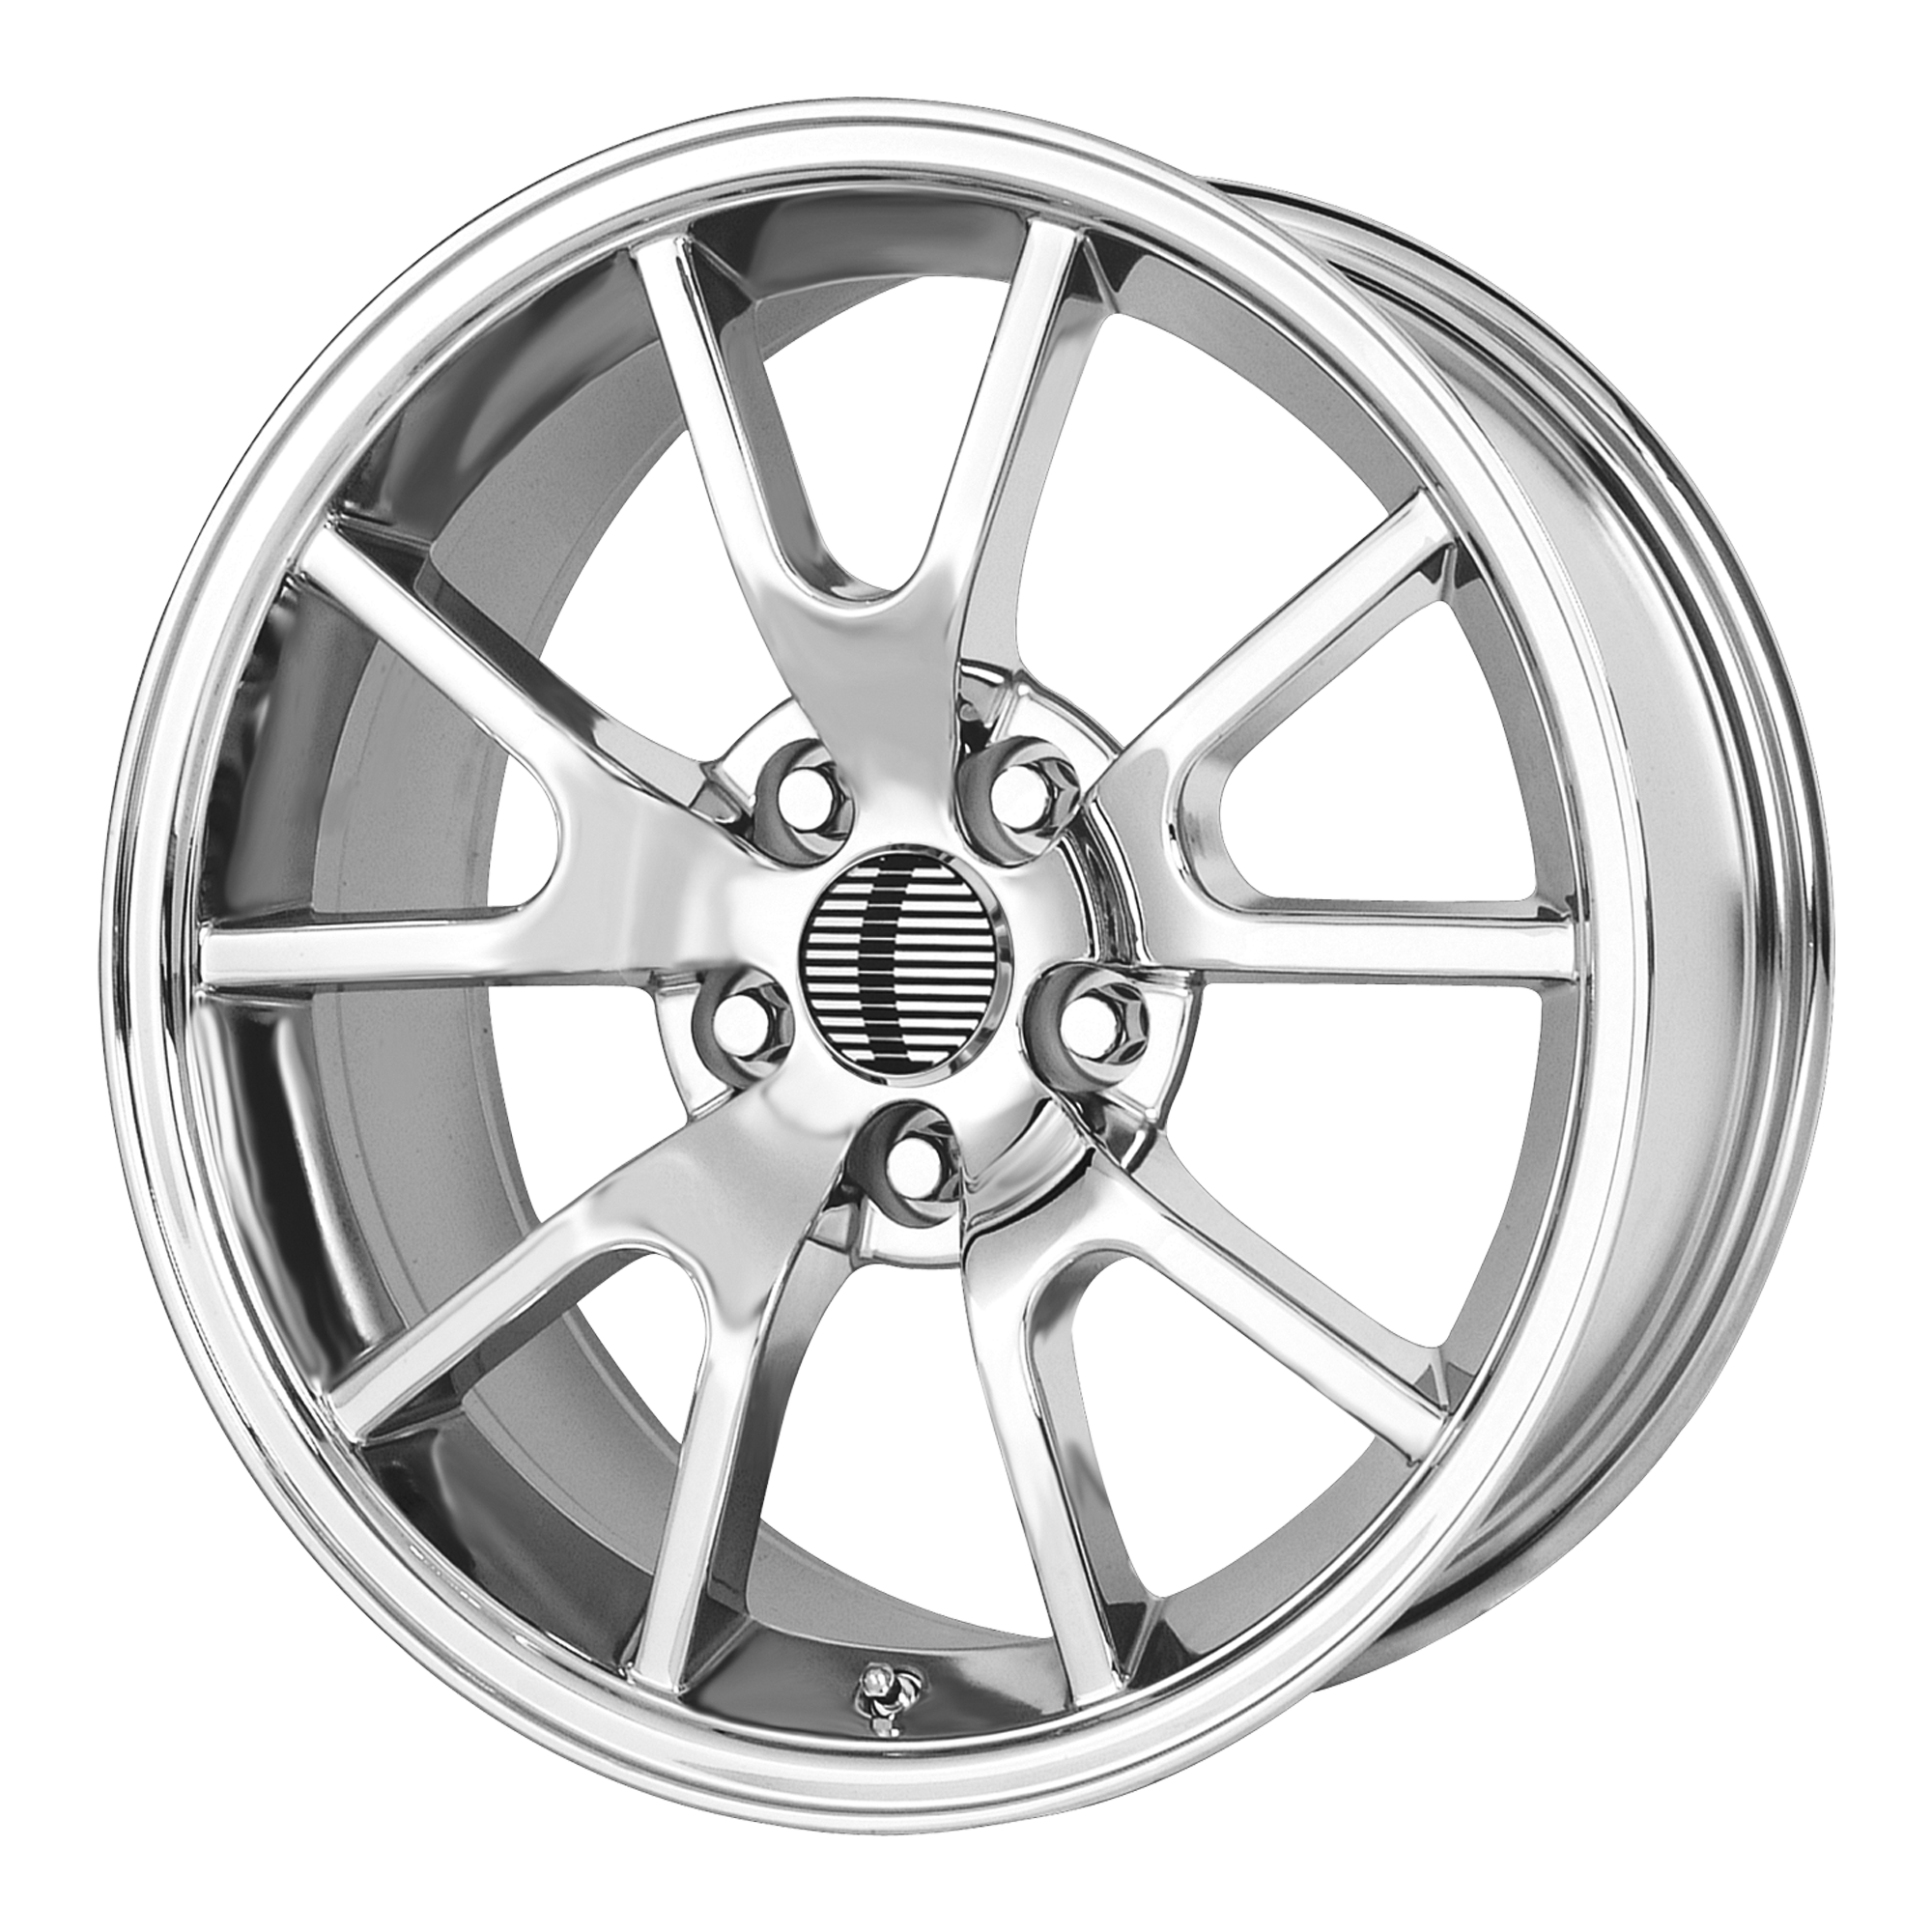 OE CREATIONS-118C 18x9 5x114.30 CHROME (30 mm)